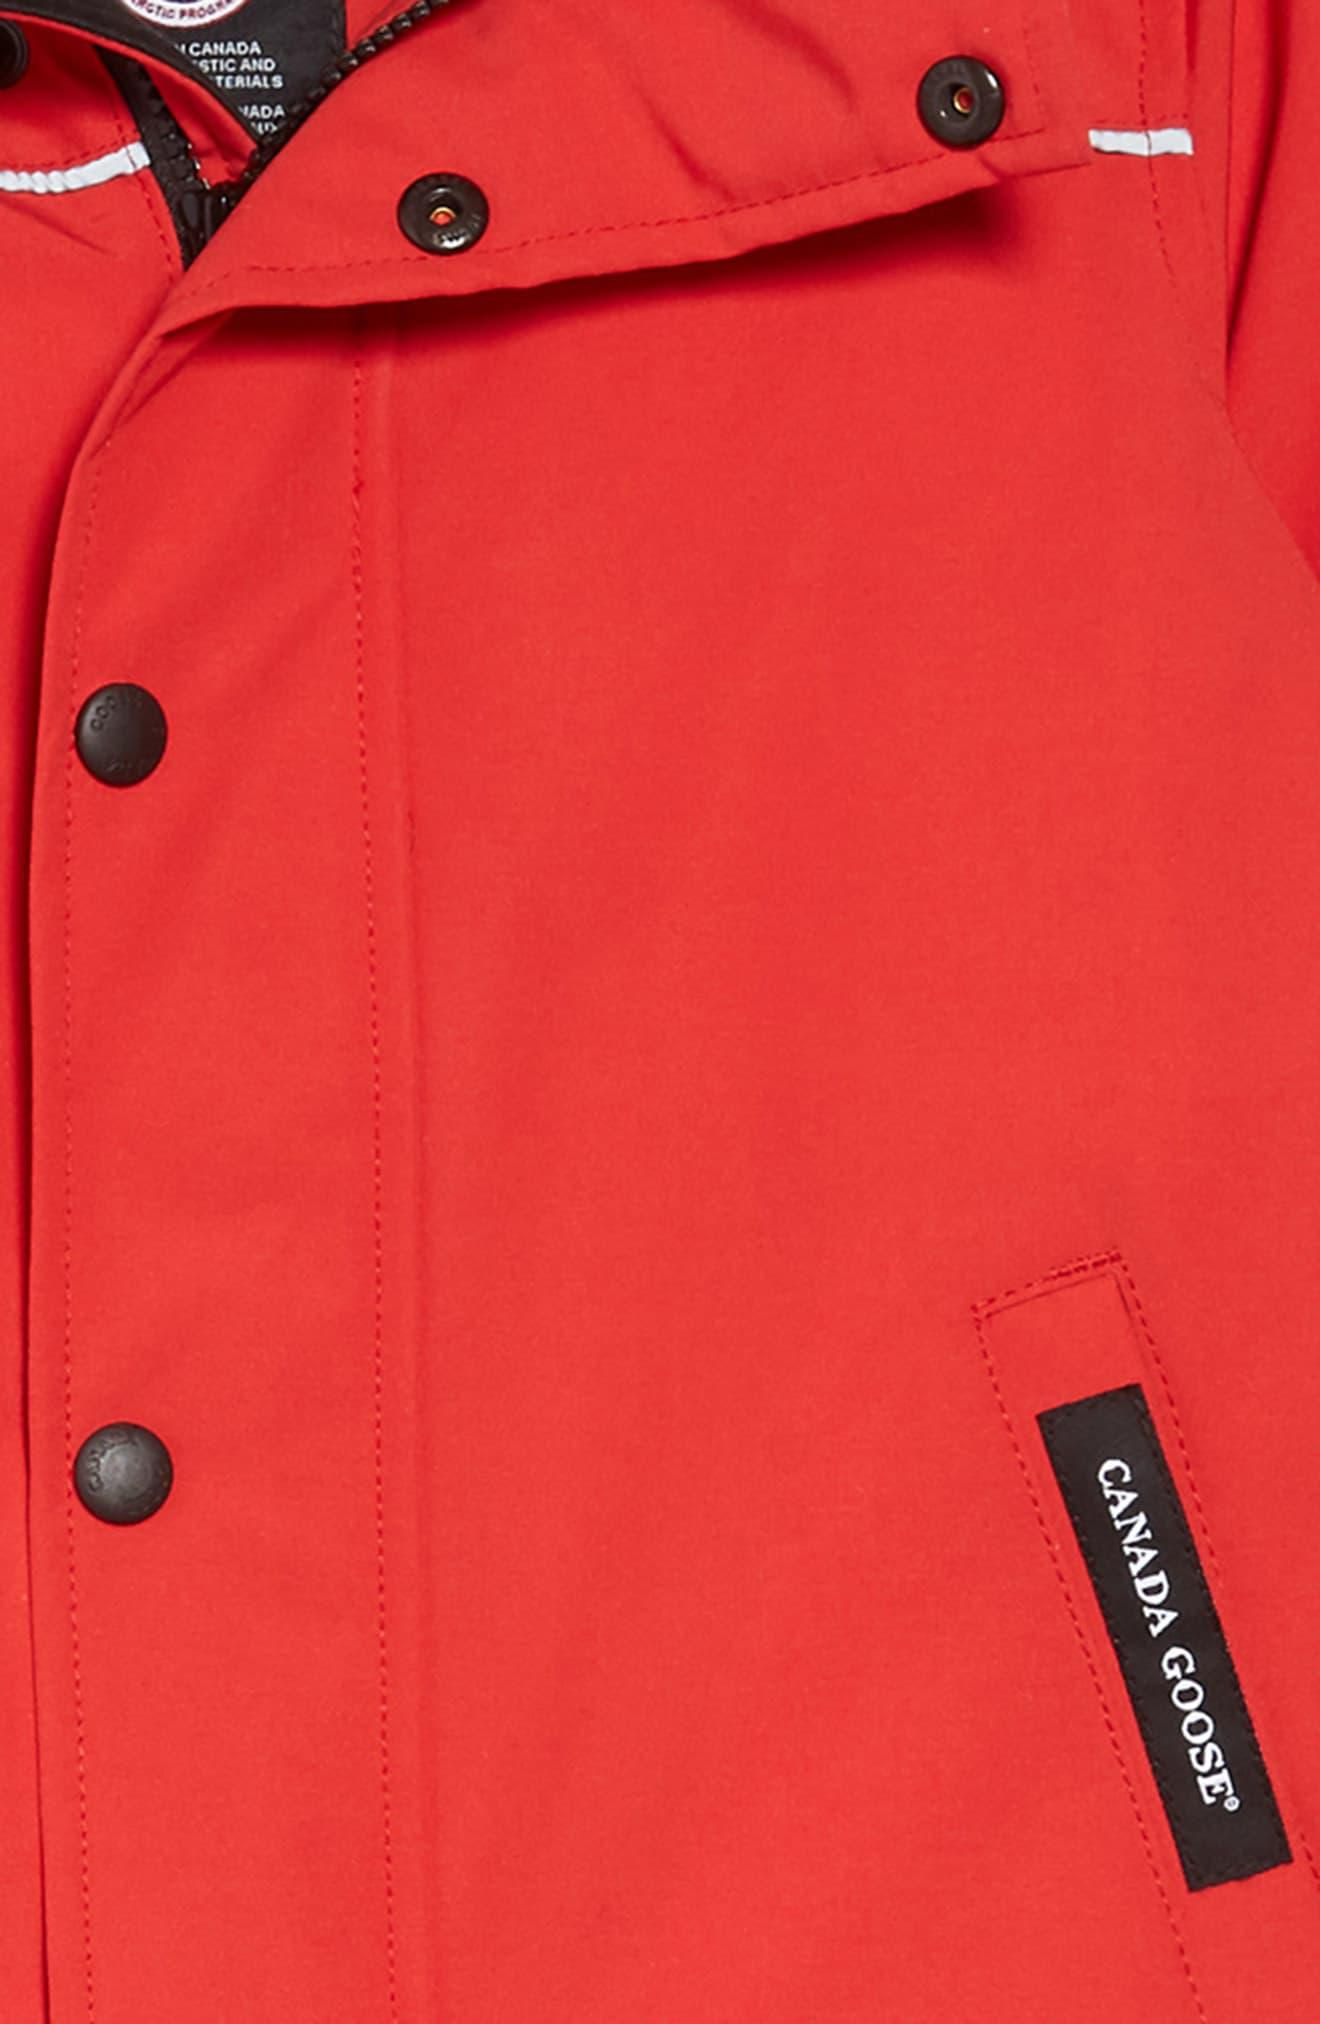 24ae24cf3 Canada Goose - Red Baby Grizzly Snowsuit With Genuine Coyote Fur Trim -  Lyst. View fullscreen